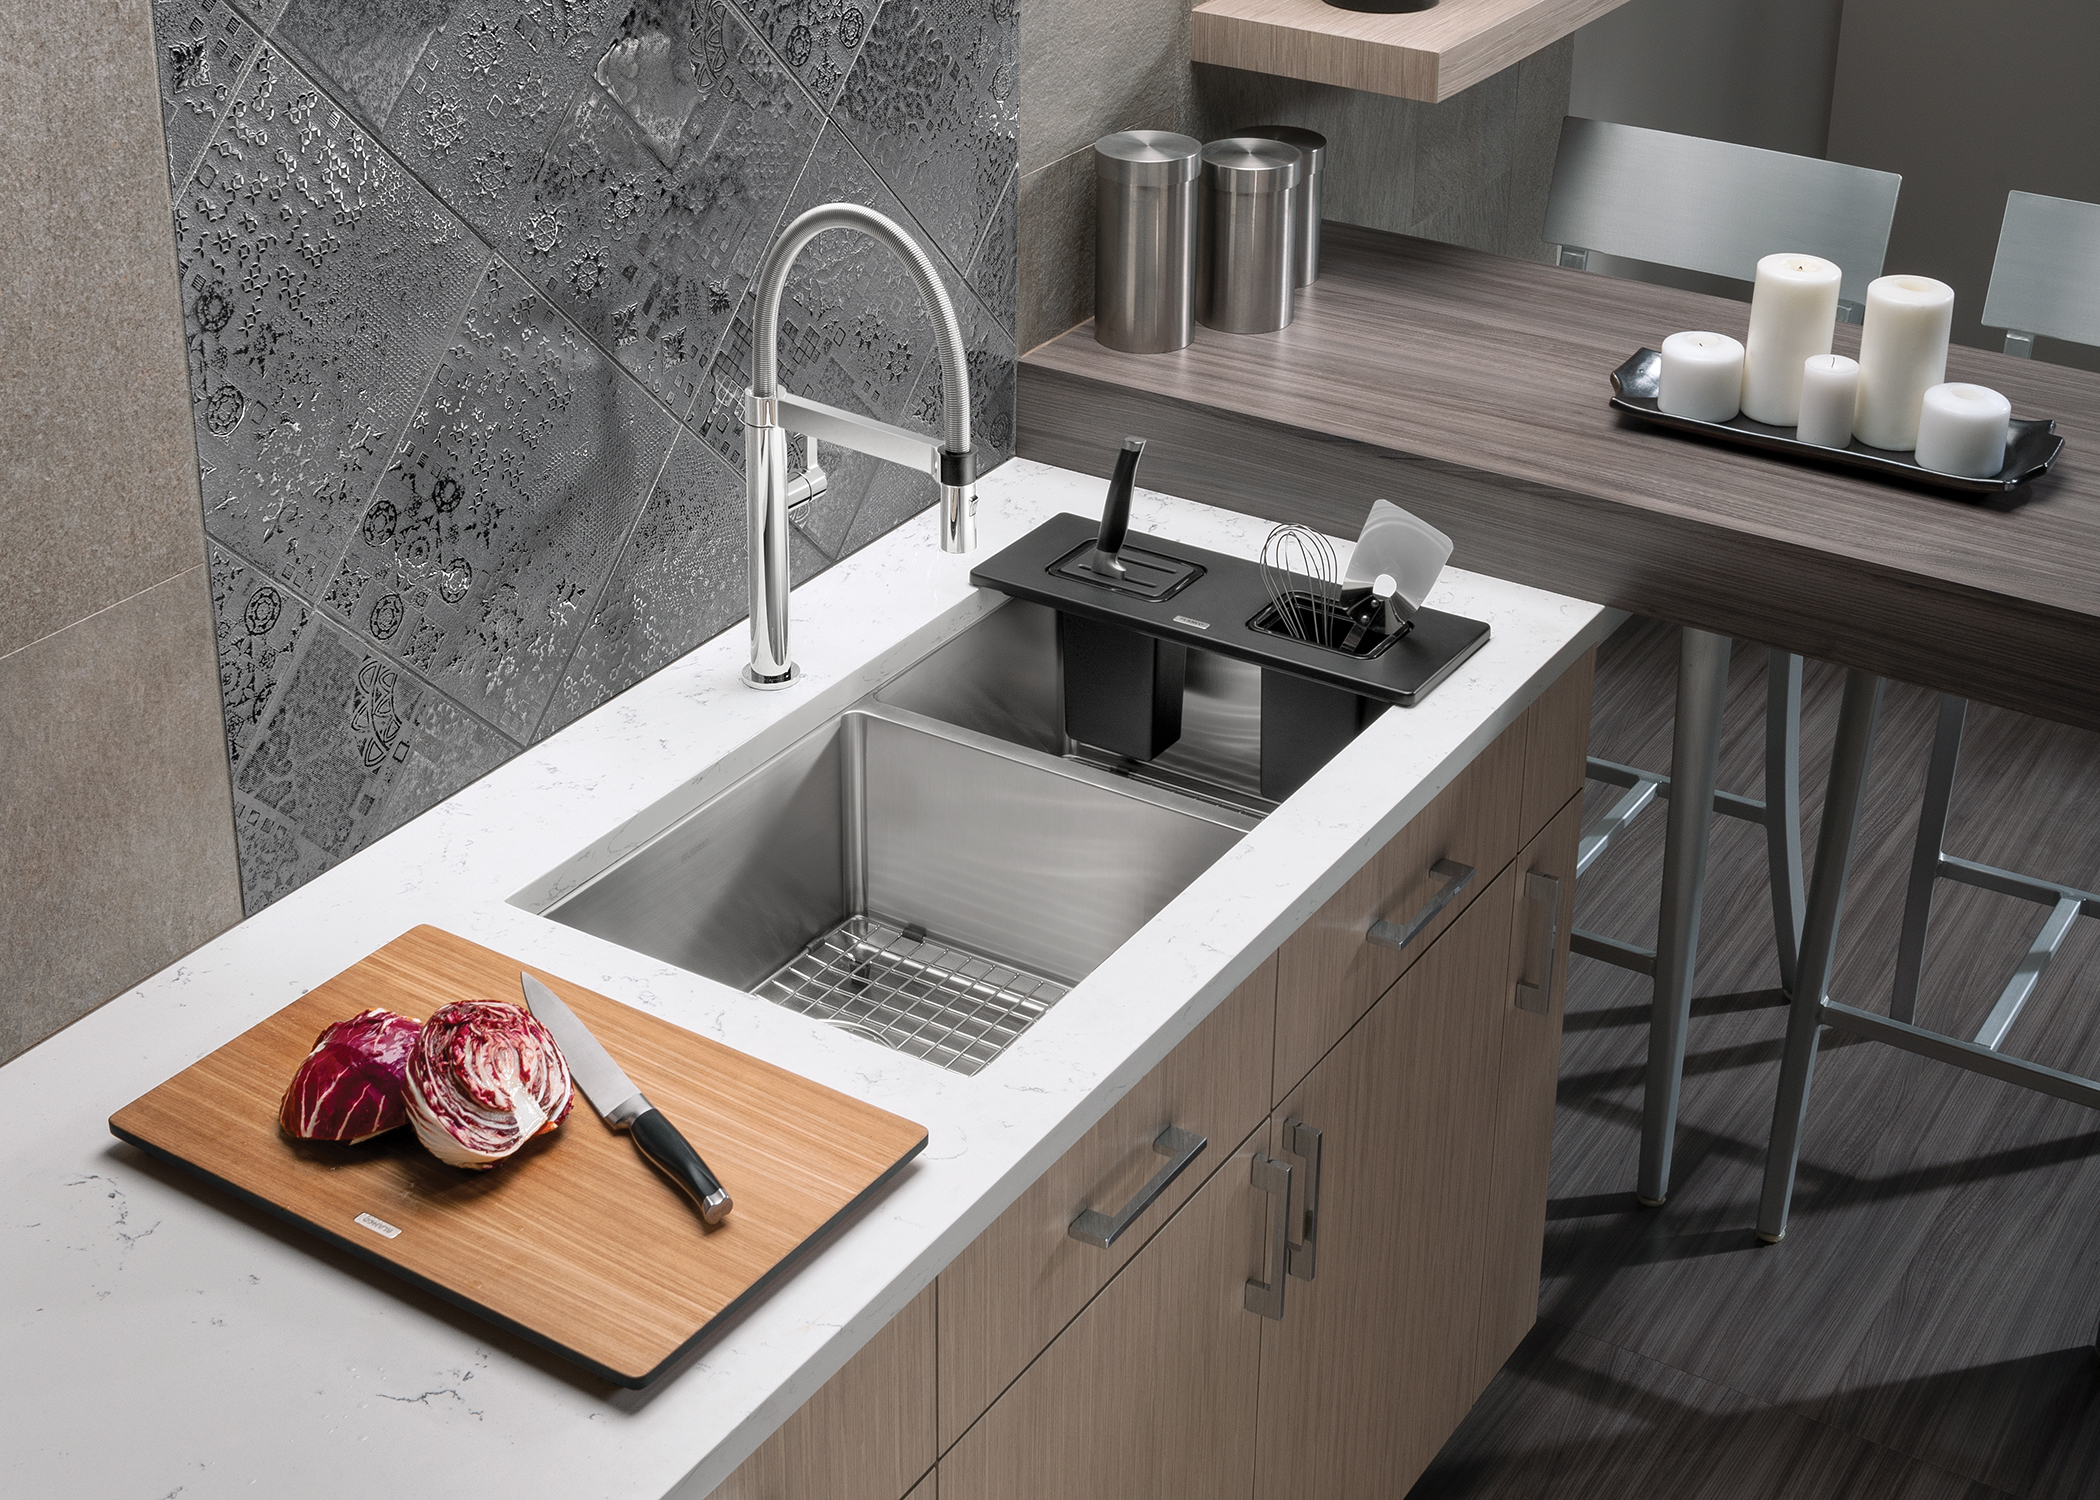 kitchen sinks designer kitchen sinks What is the one kitchen accessory you can t live without